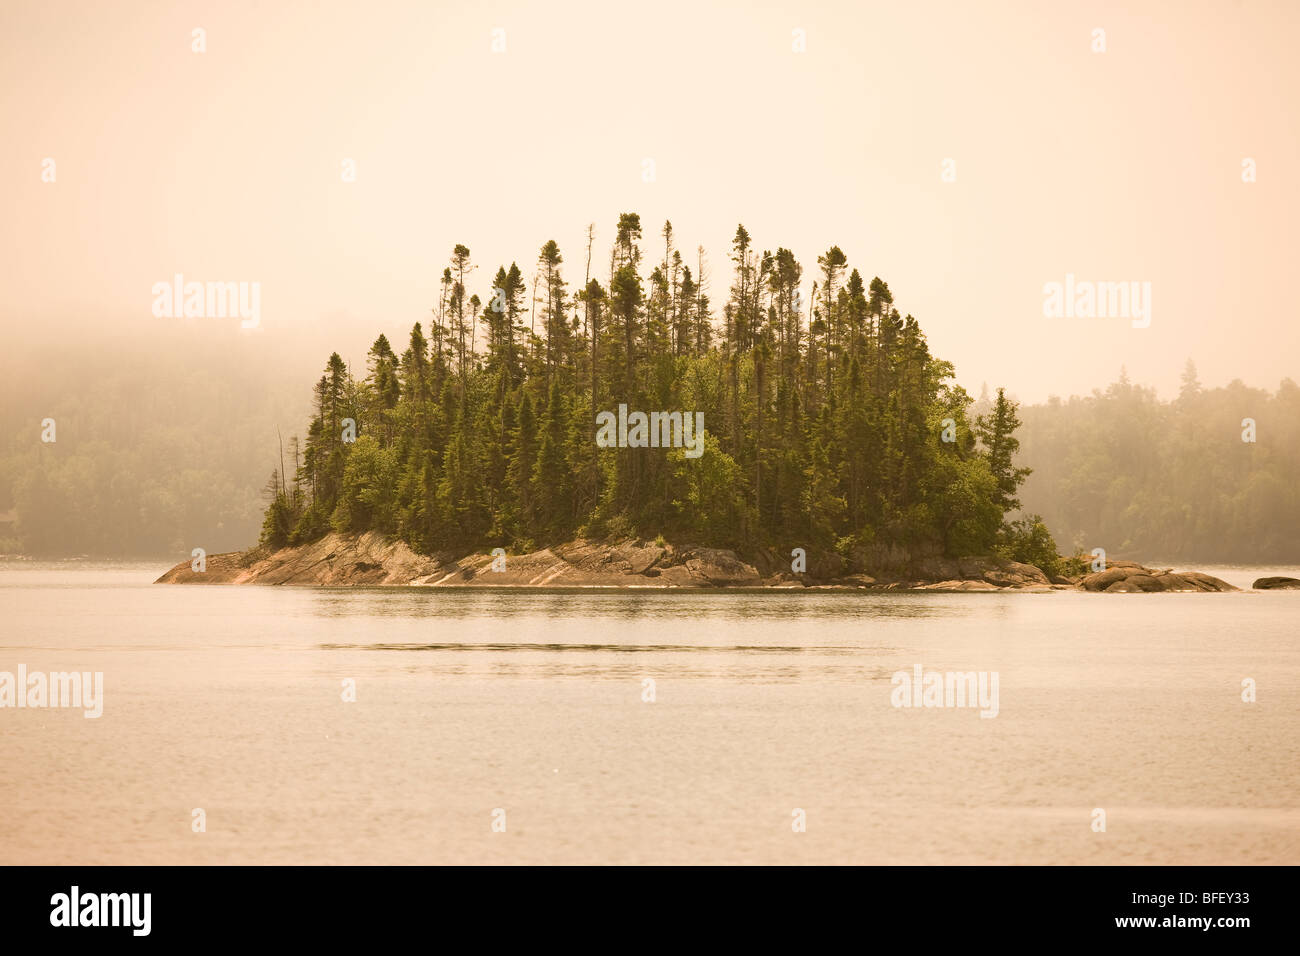 Island in fog in Warp Bay as seen from a canoe/kayak or hike-in campsite along Lake Superior Coastal Trail Lake - Stock Image